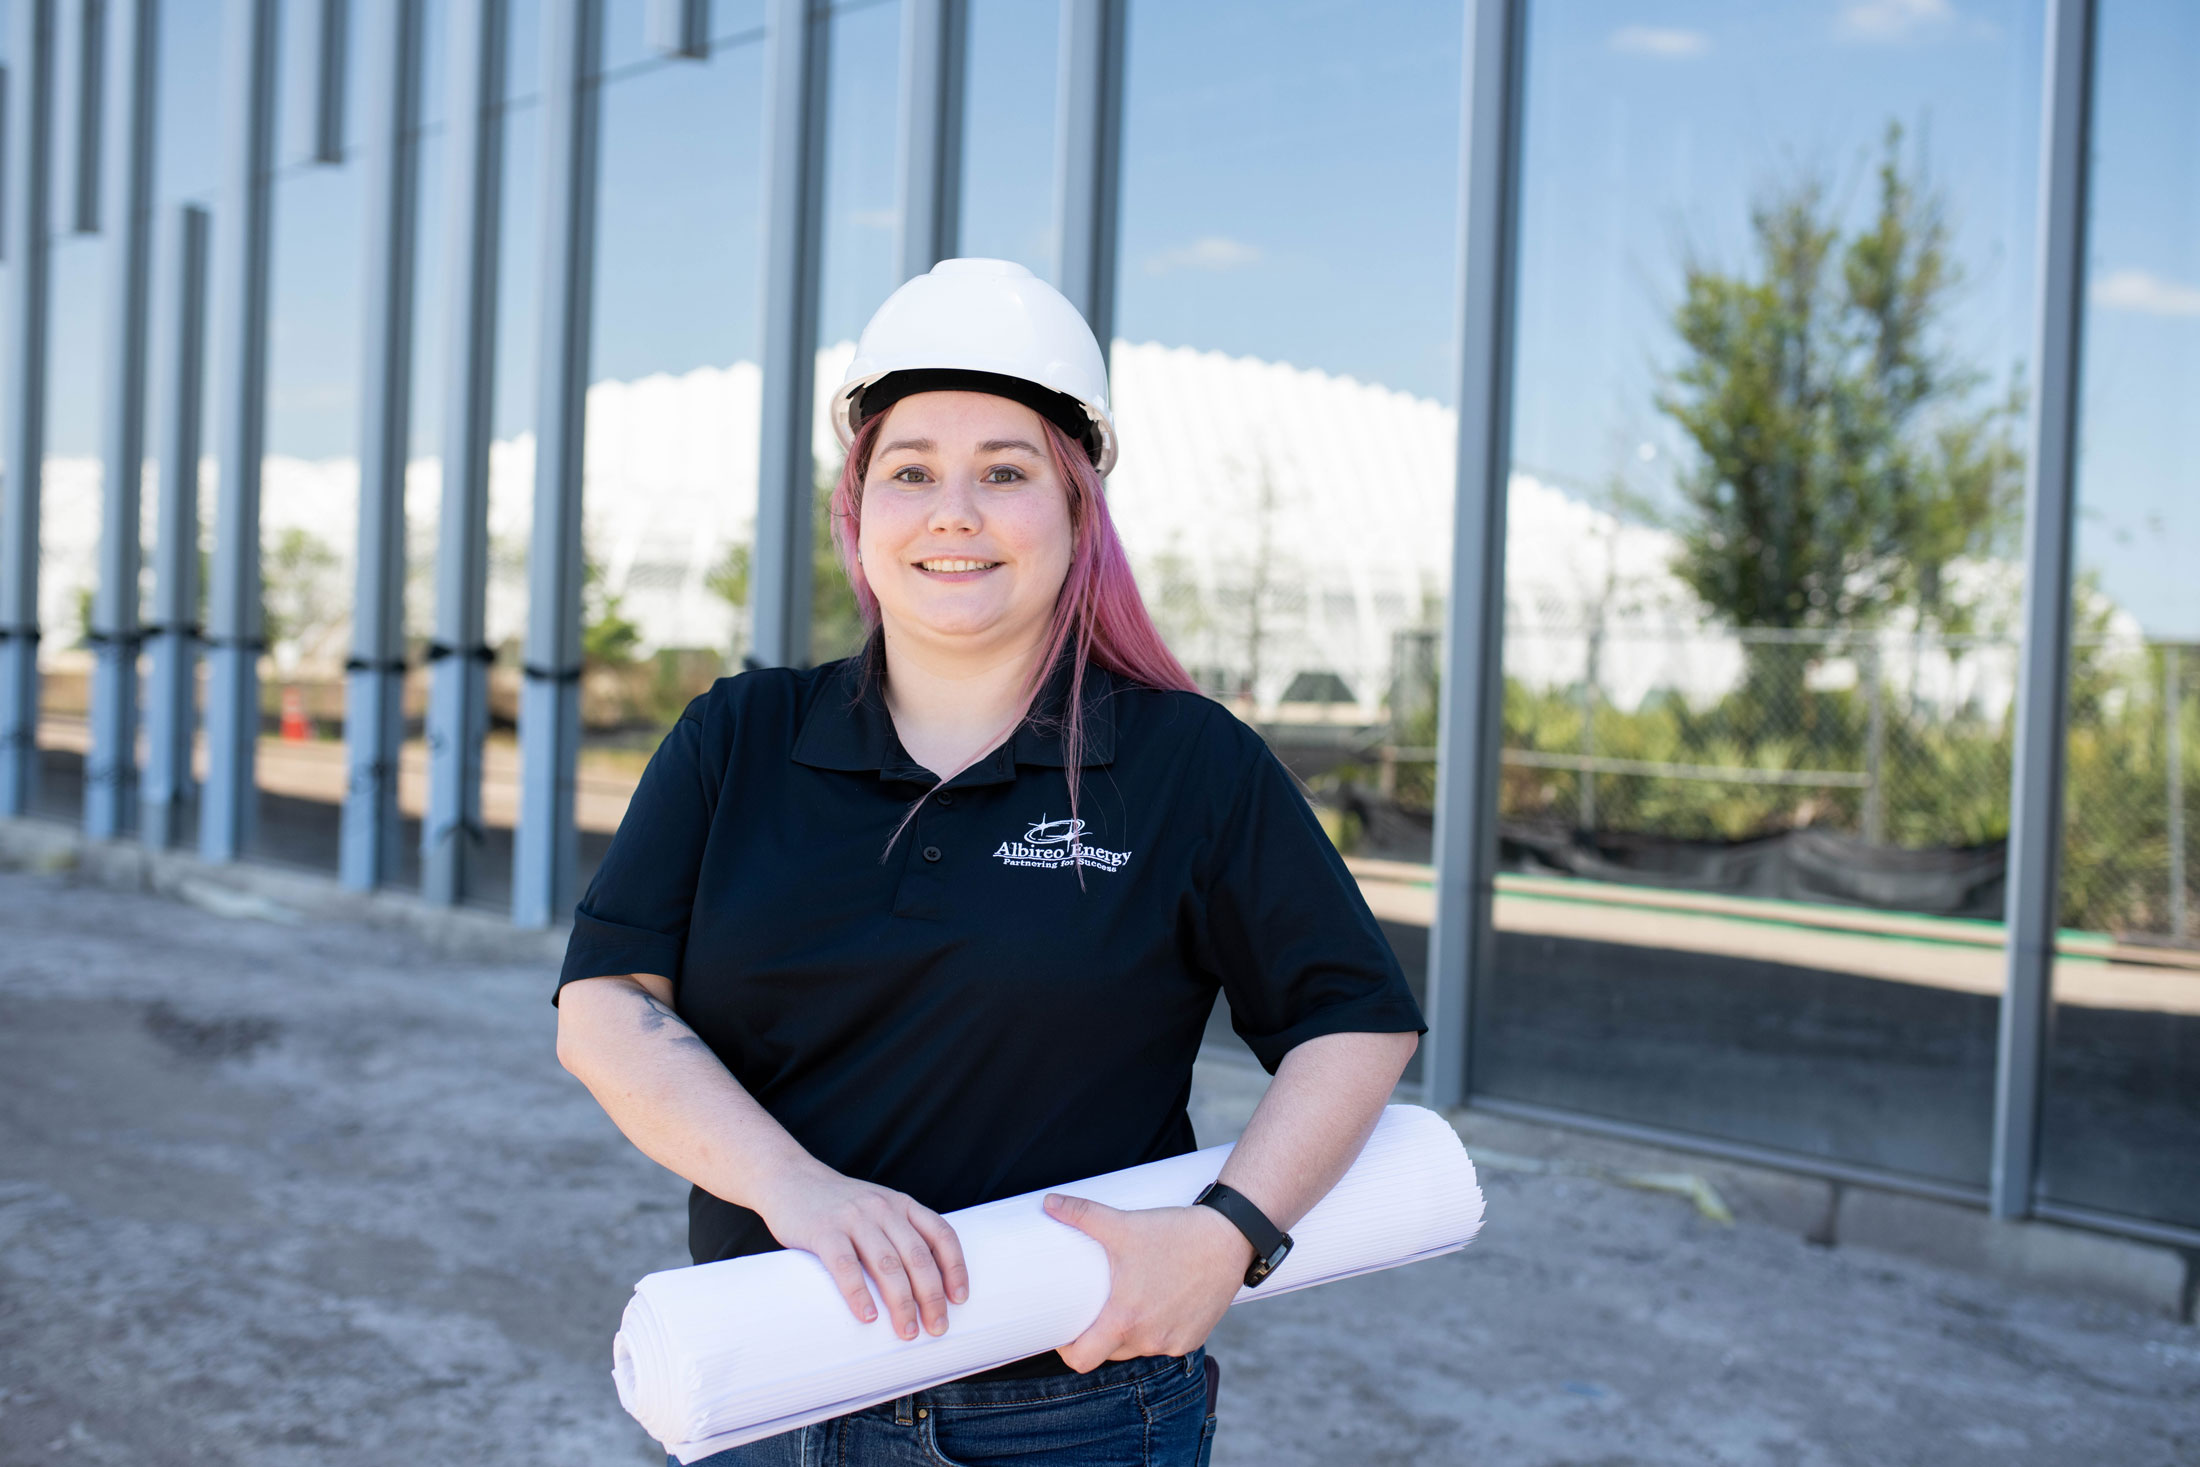 Engineering alumna puts skills to work in ARC construction